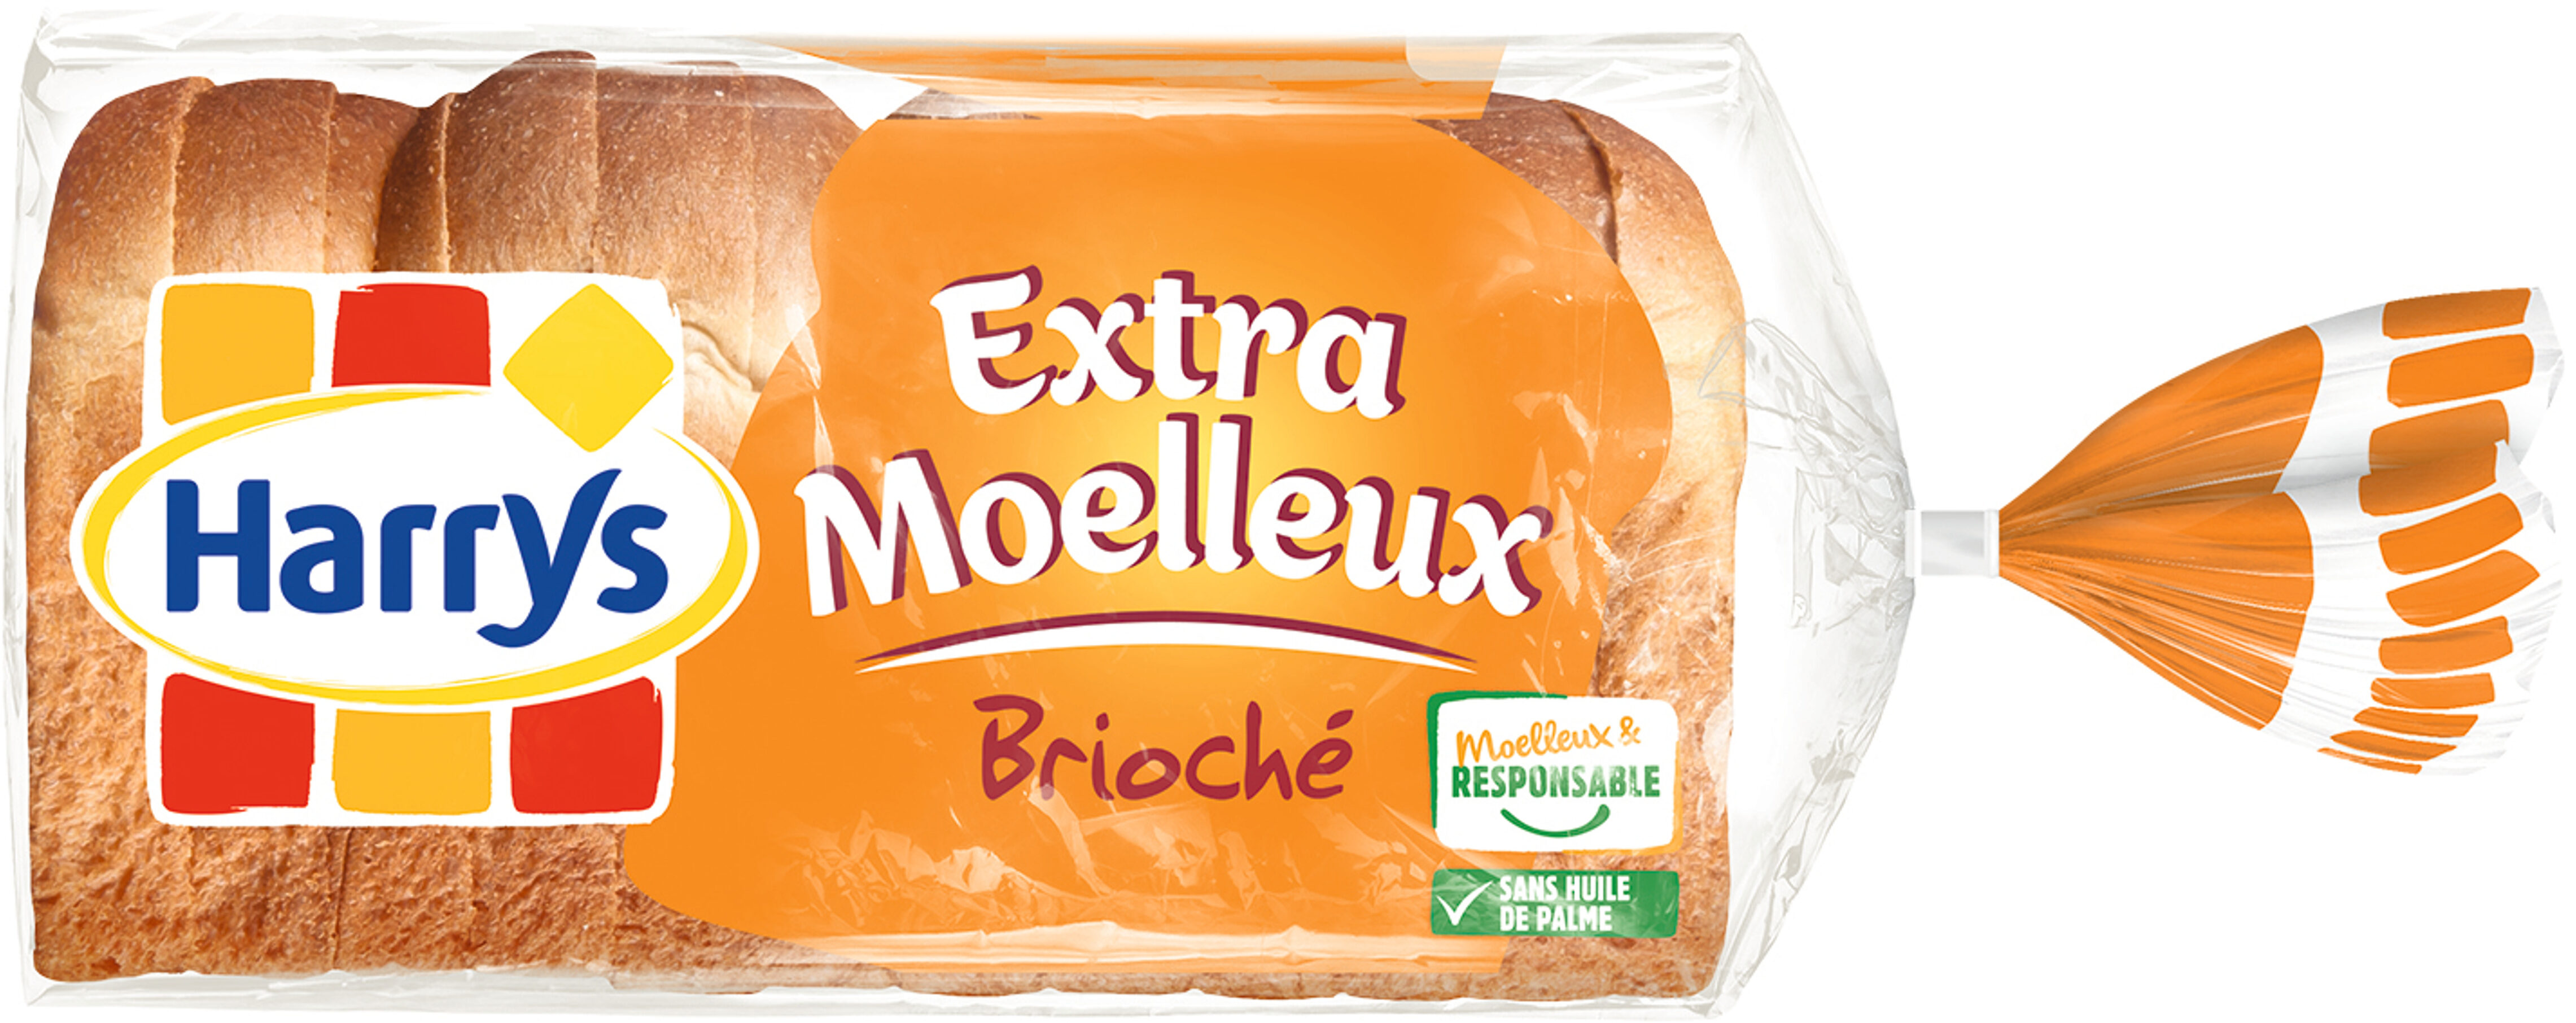 Extra moelleux brioché, Harry's (250 g)